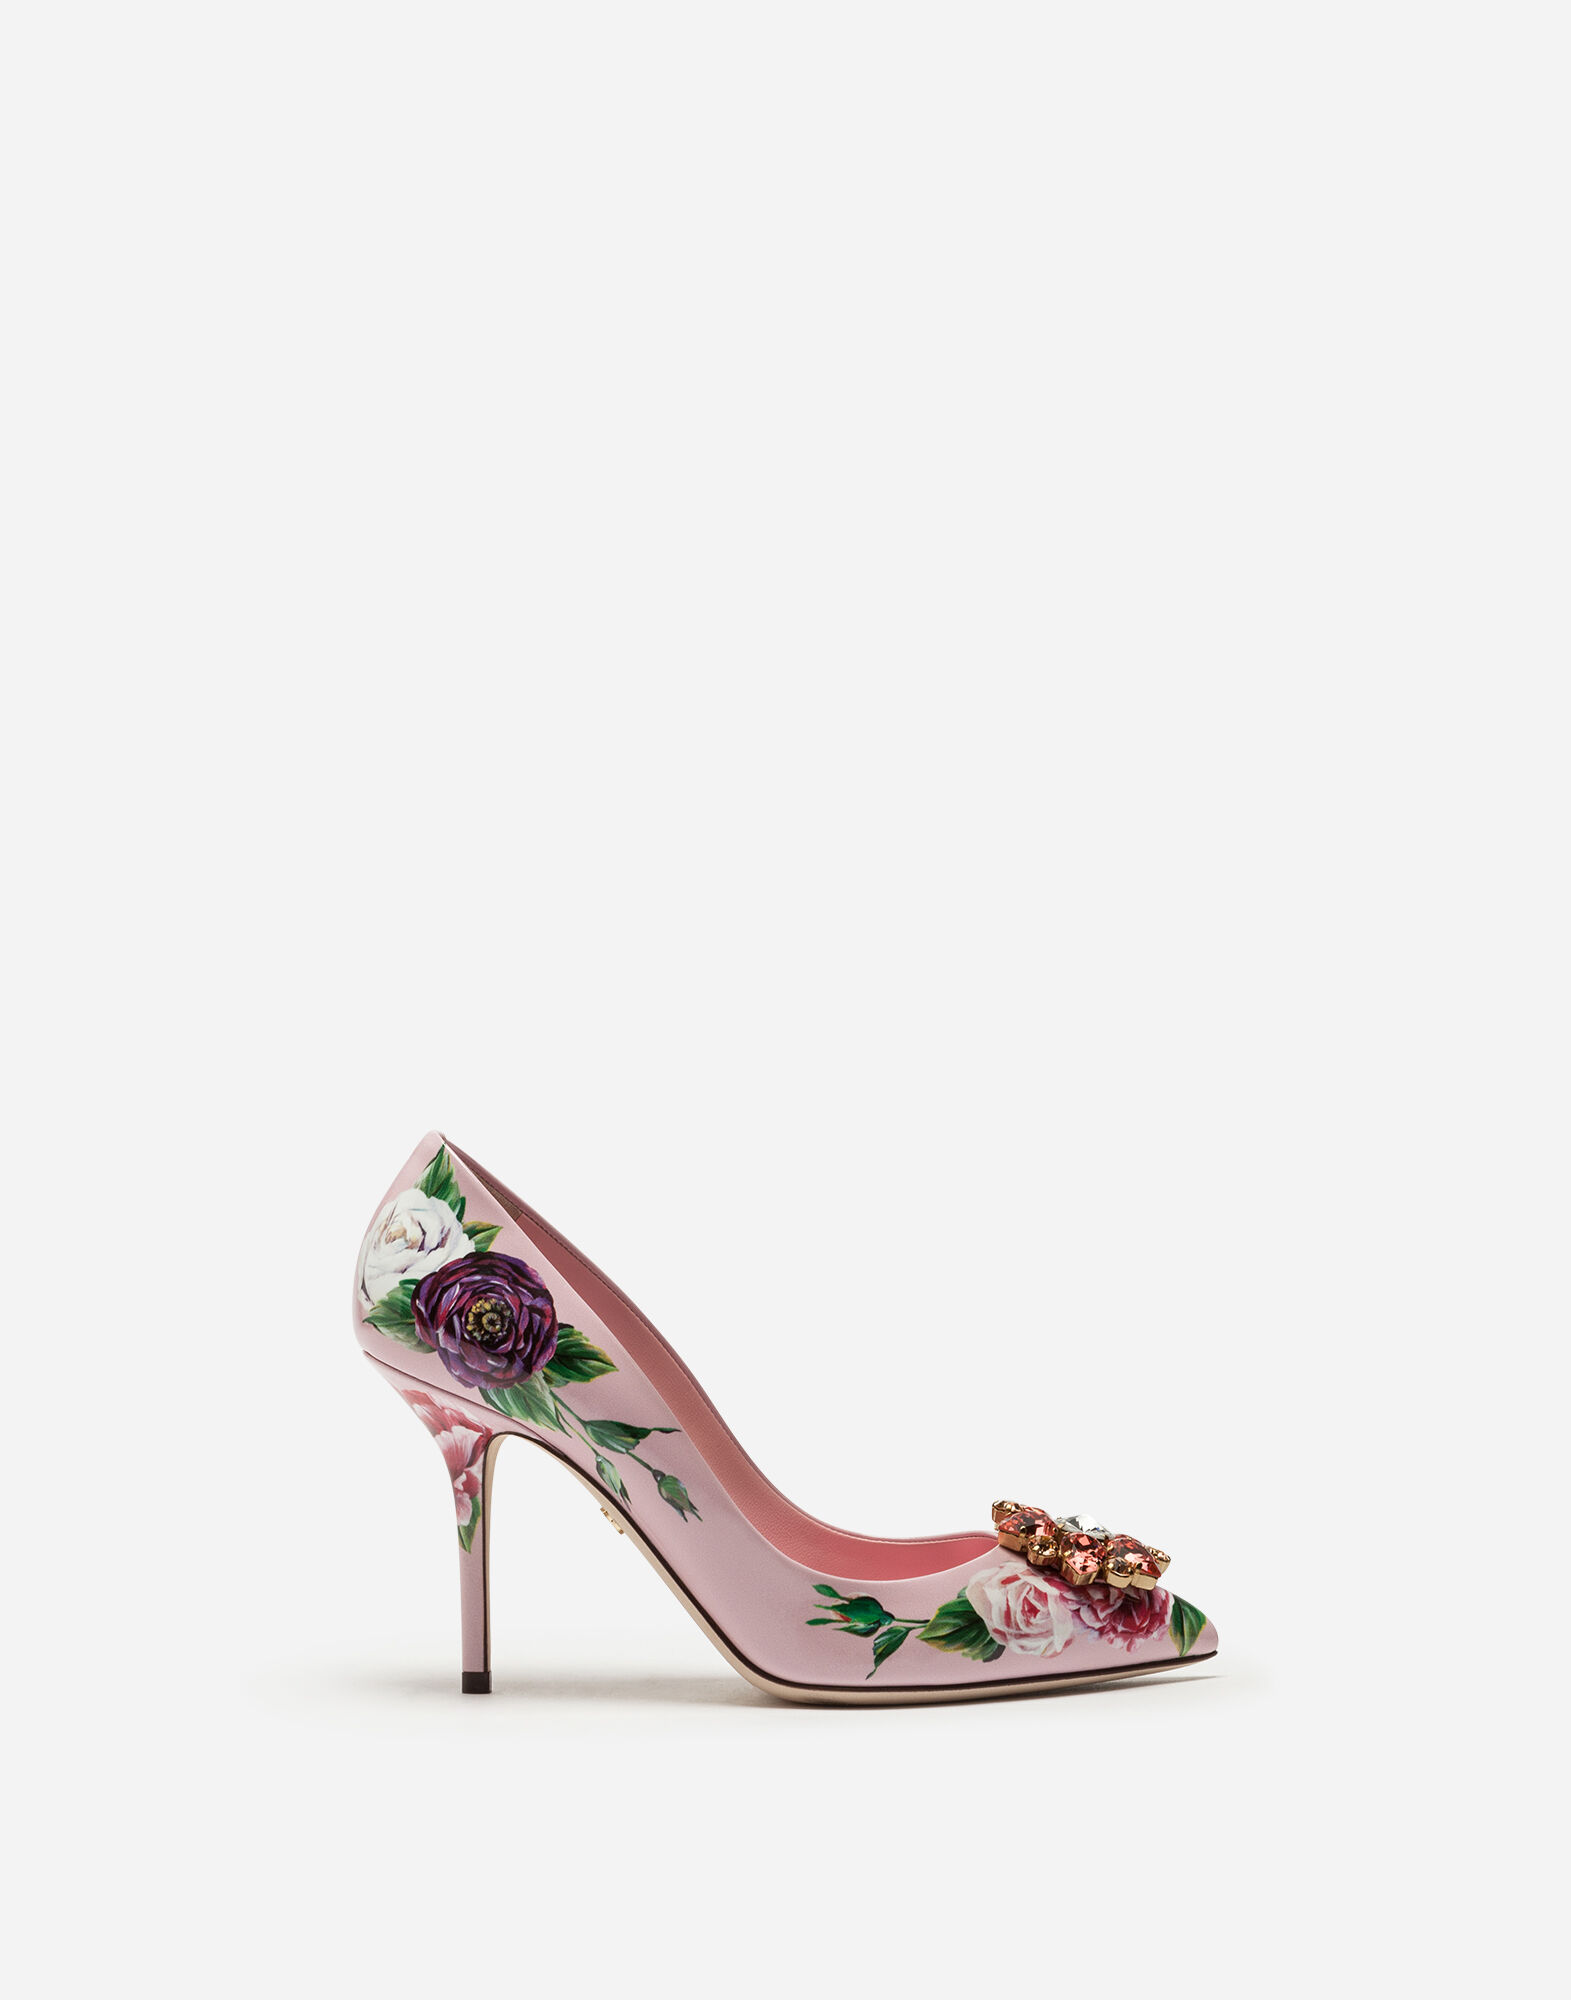 Free Shipping From China Dolce & Gabbana Woman Lace Slingback Point-toe Flats Size 35 Free Shipping Looking For Buy Cheap Eastbay Rbku44ph